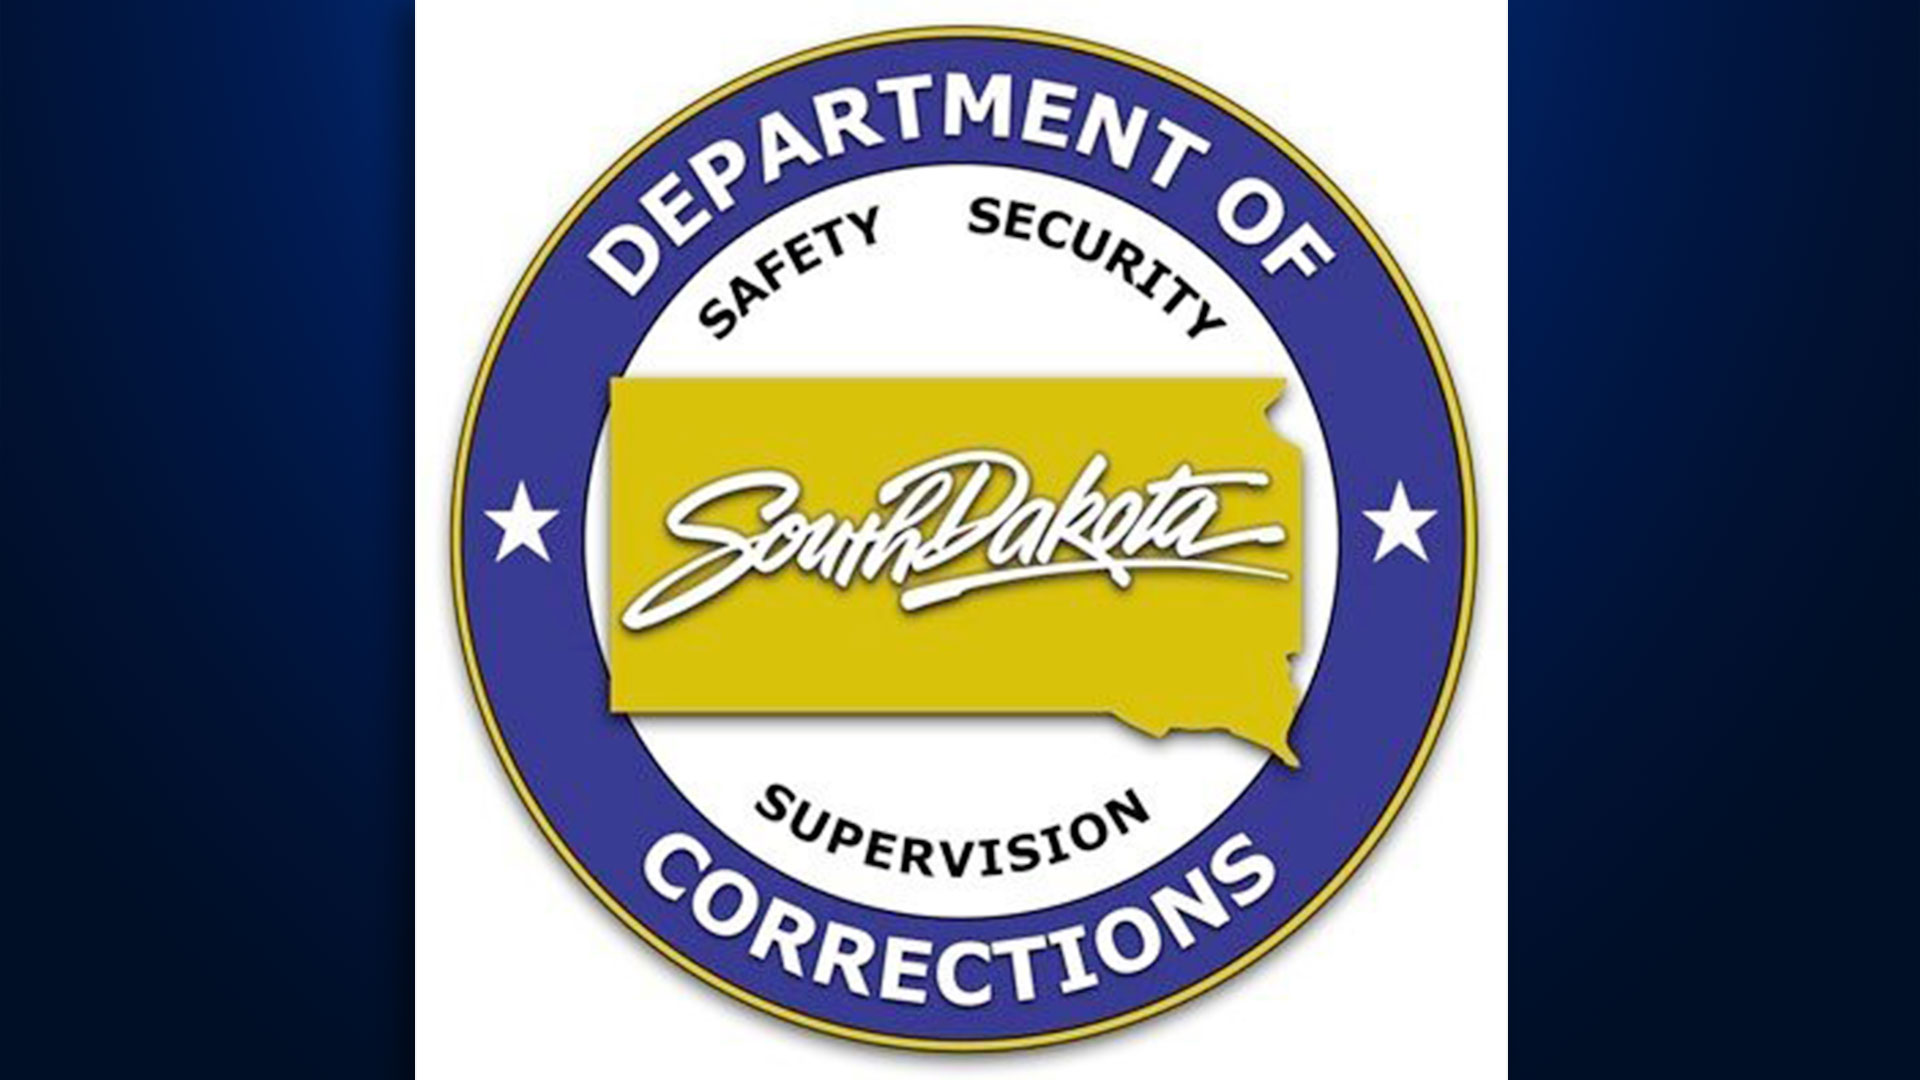 KELO SD Departments of Corrections Logo